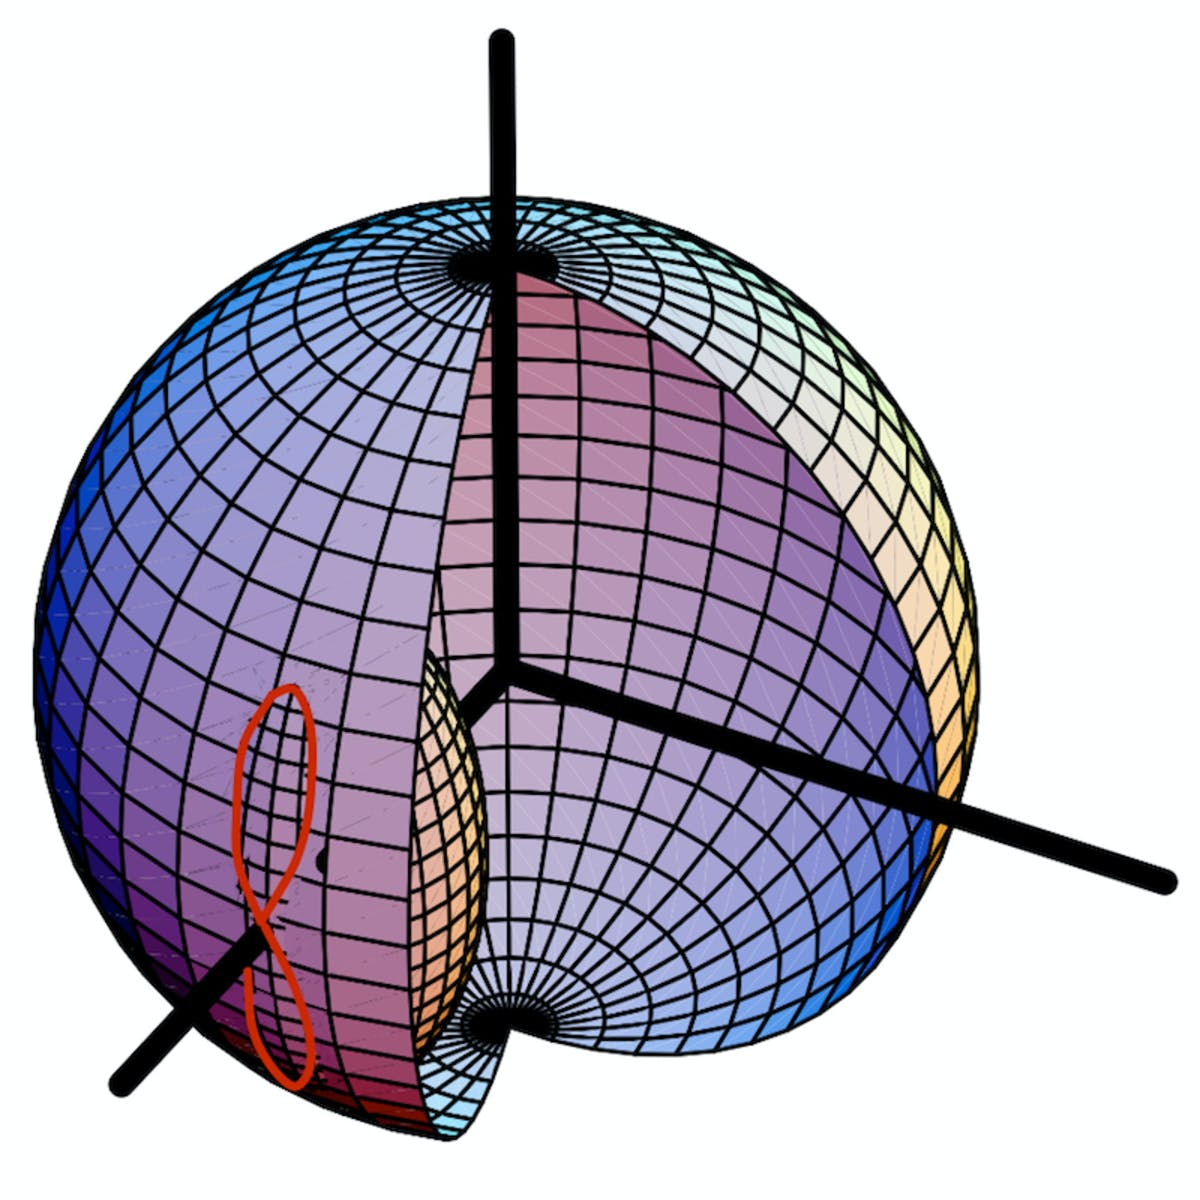 Kinematics: Describing the Motions of Spacecraft